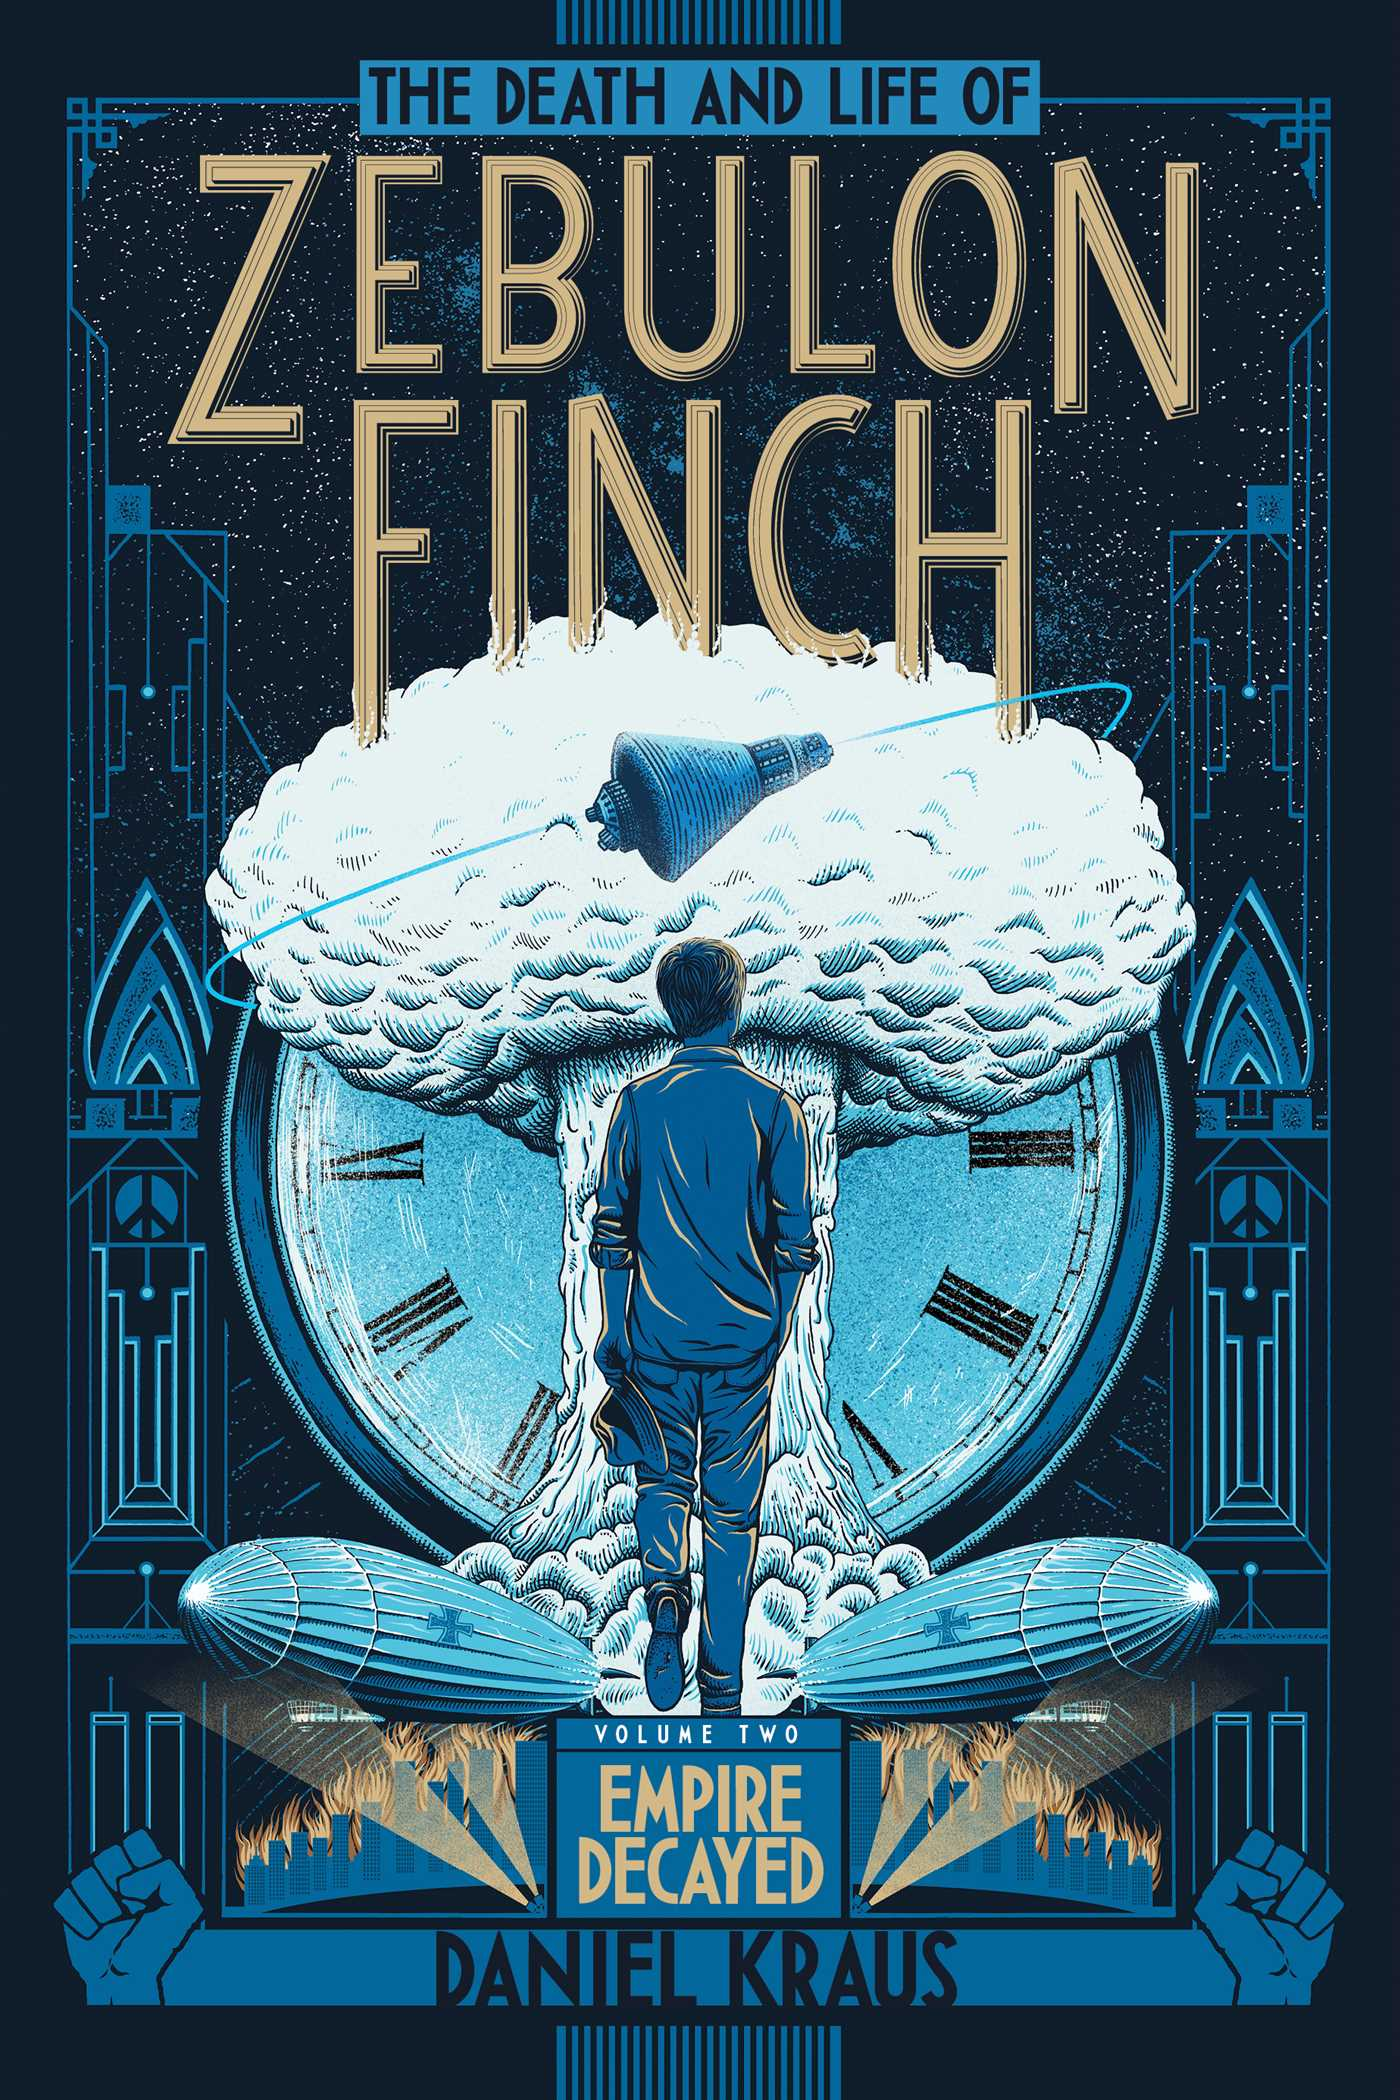 Death and Life of Zebulon Finch, Volume Two